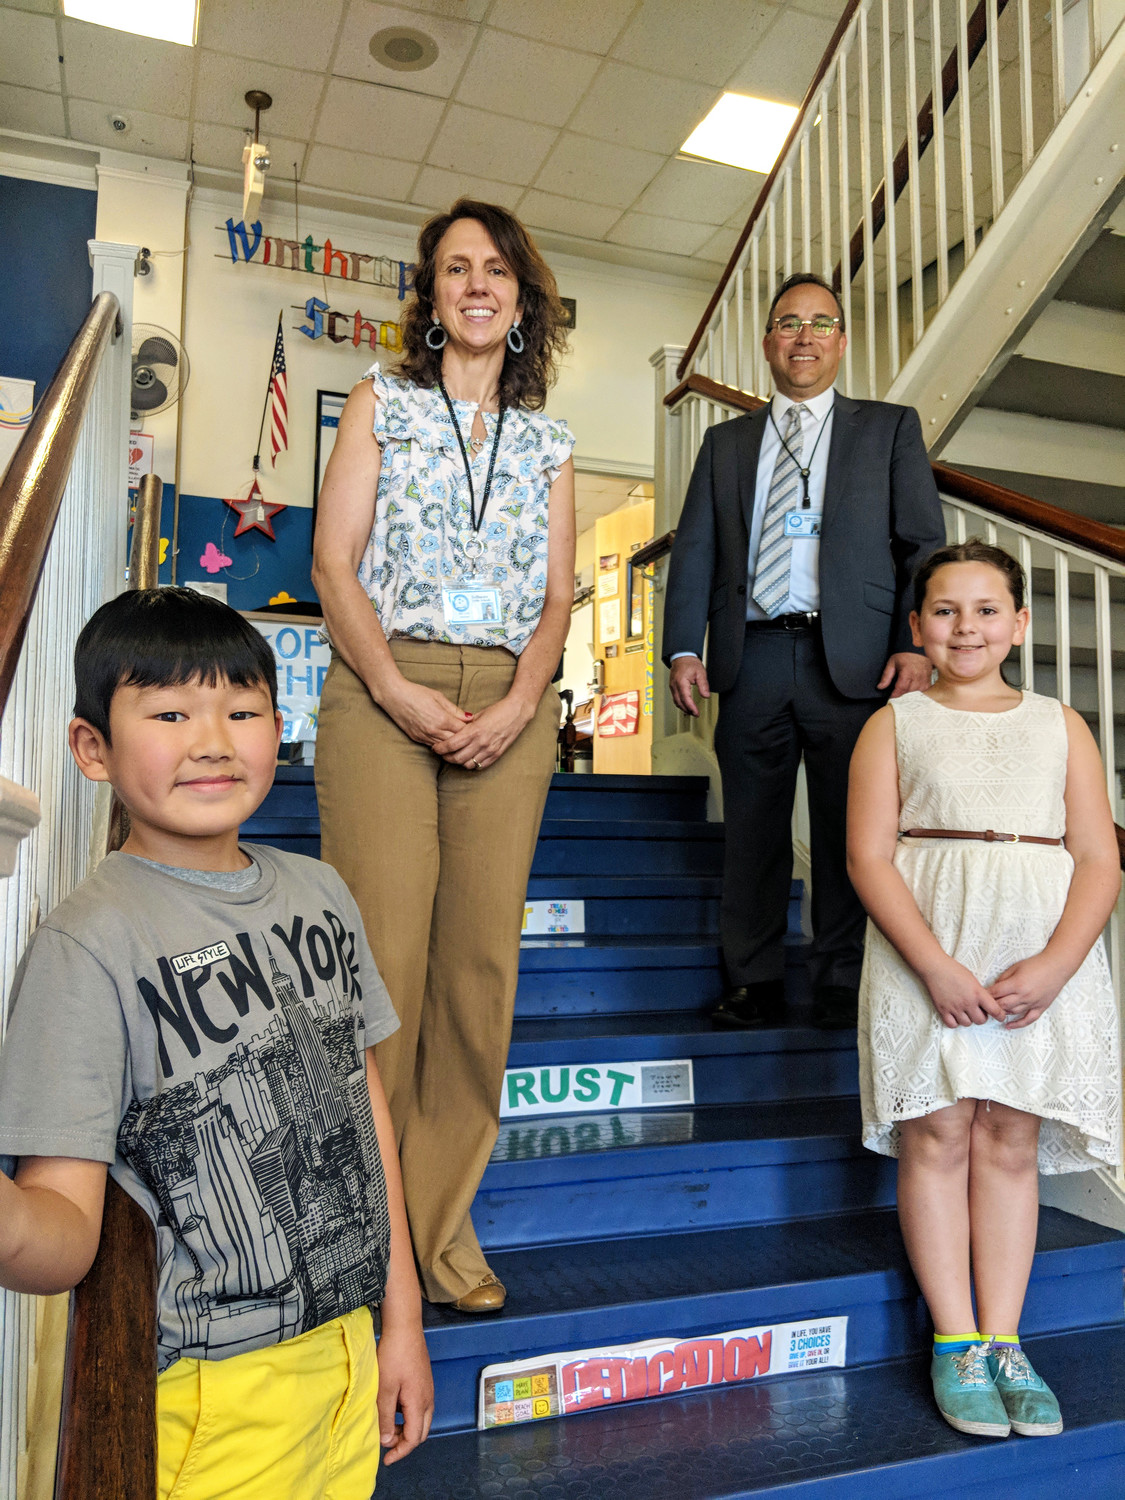 Principal Sally Curto and Bellmore Superintendent Dr. Joseph Famularo joined young student ambassadors Daniel and Allison in explaining why their school district was recently given Lighthouse distinction by the national leadership organization Franklincovey.